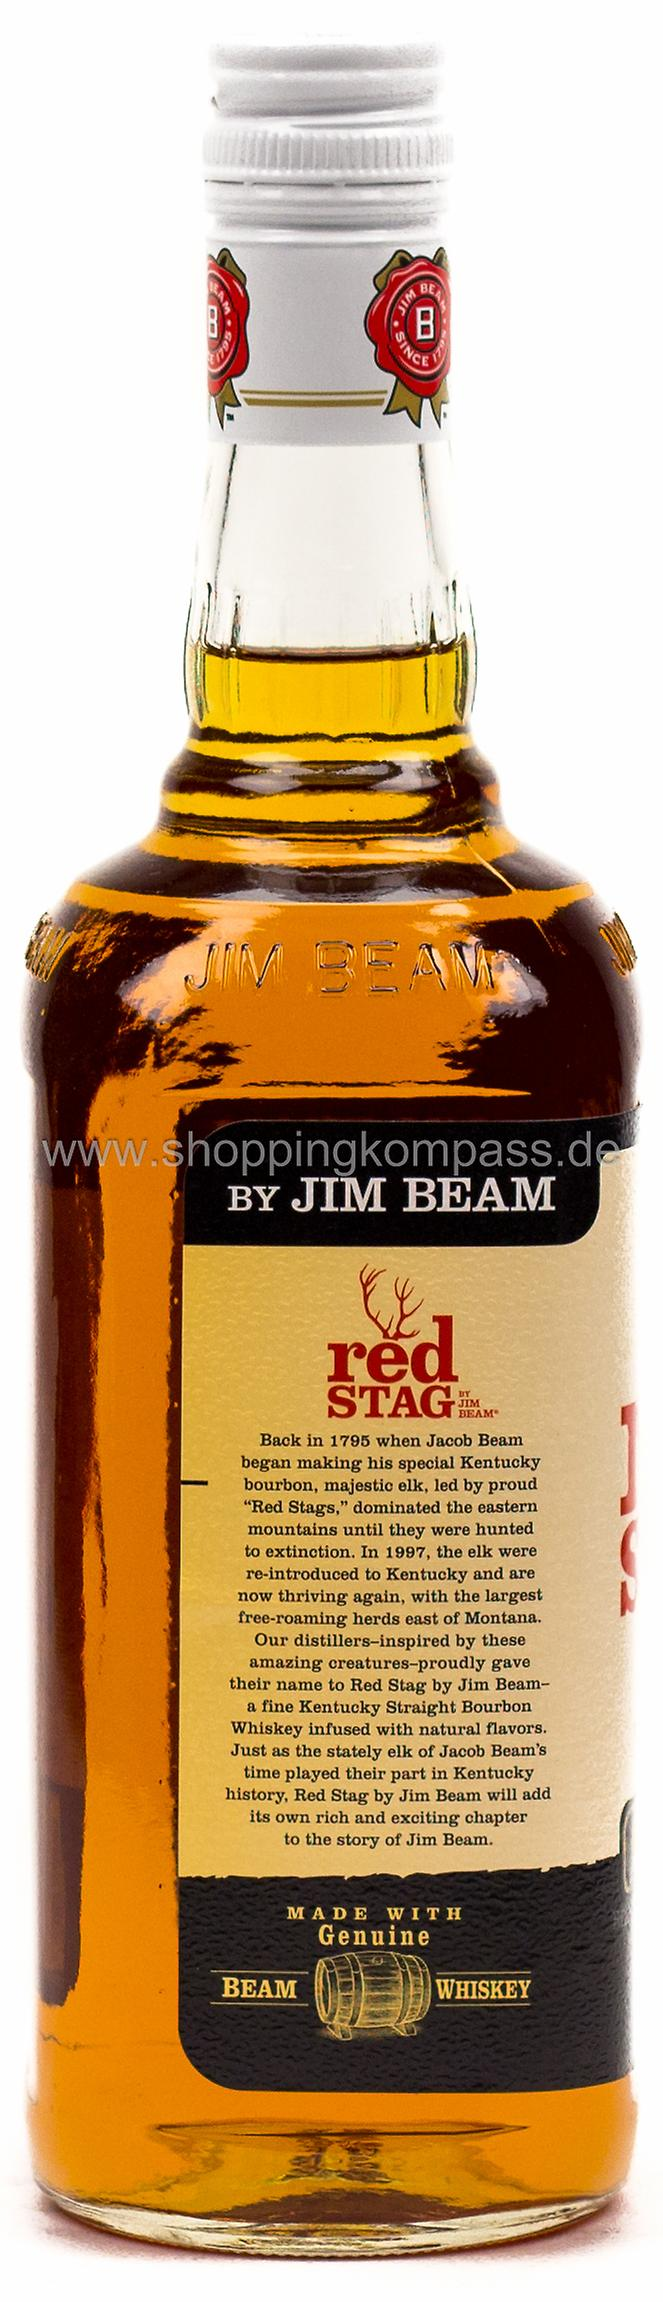 Jim Beam Bourbon Whiskey Red Stag Black Cherry 0,7 l